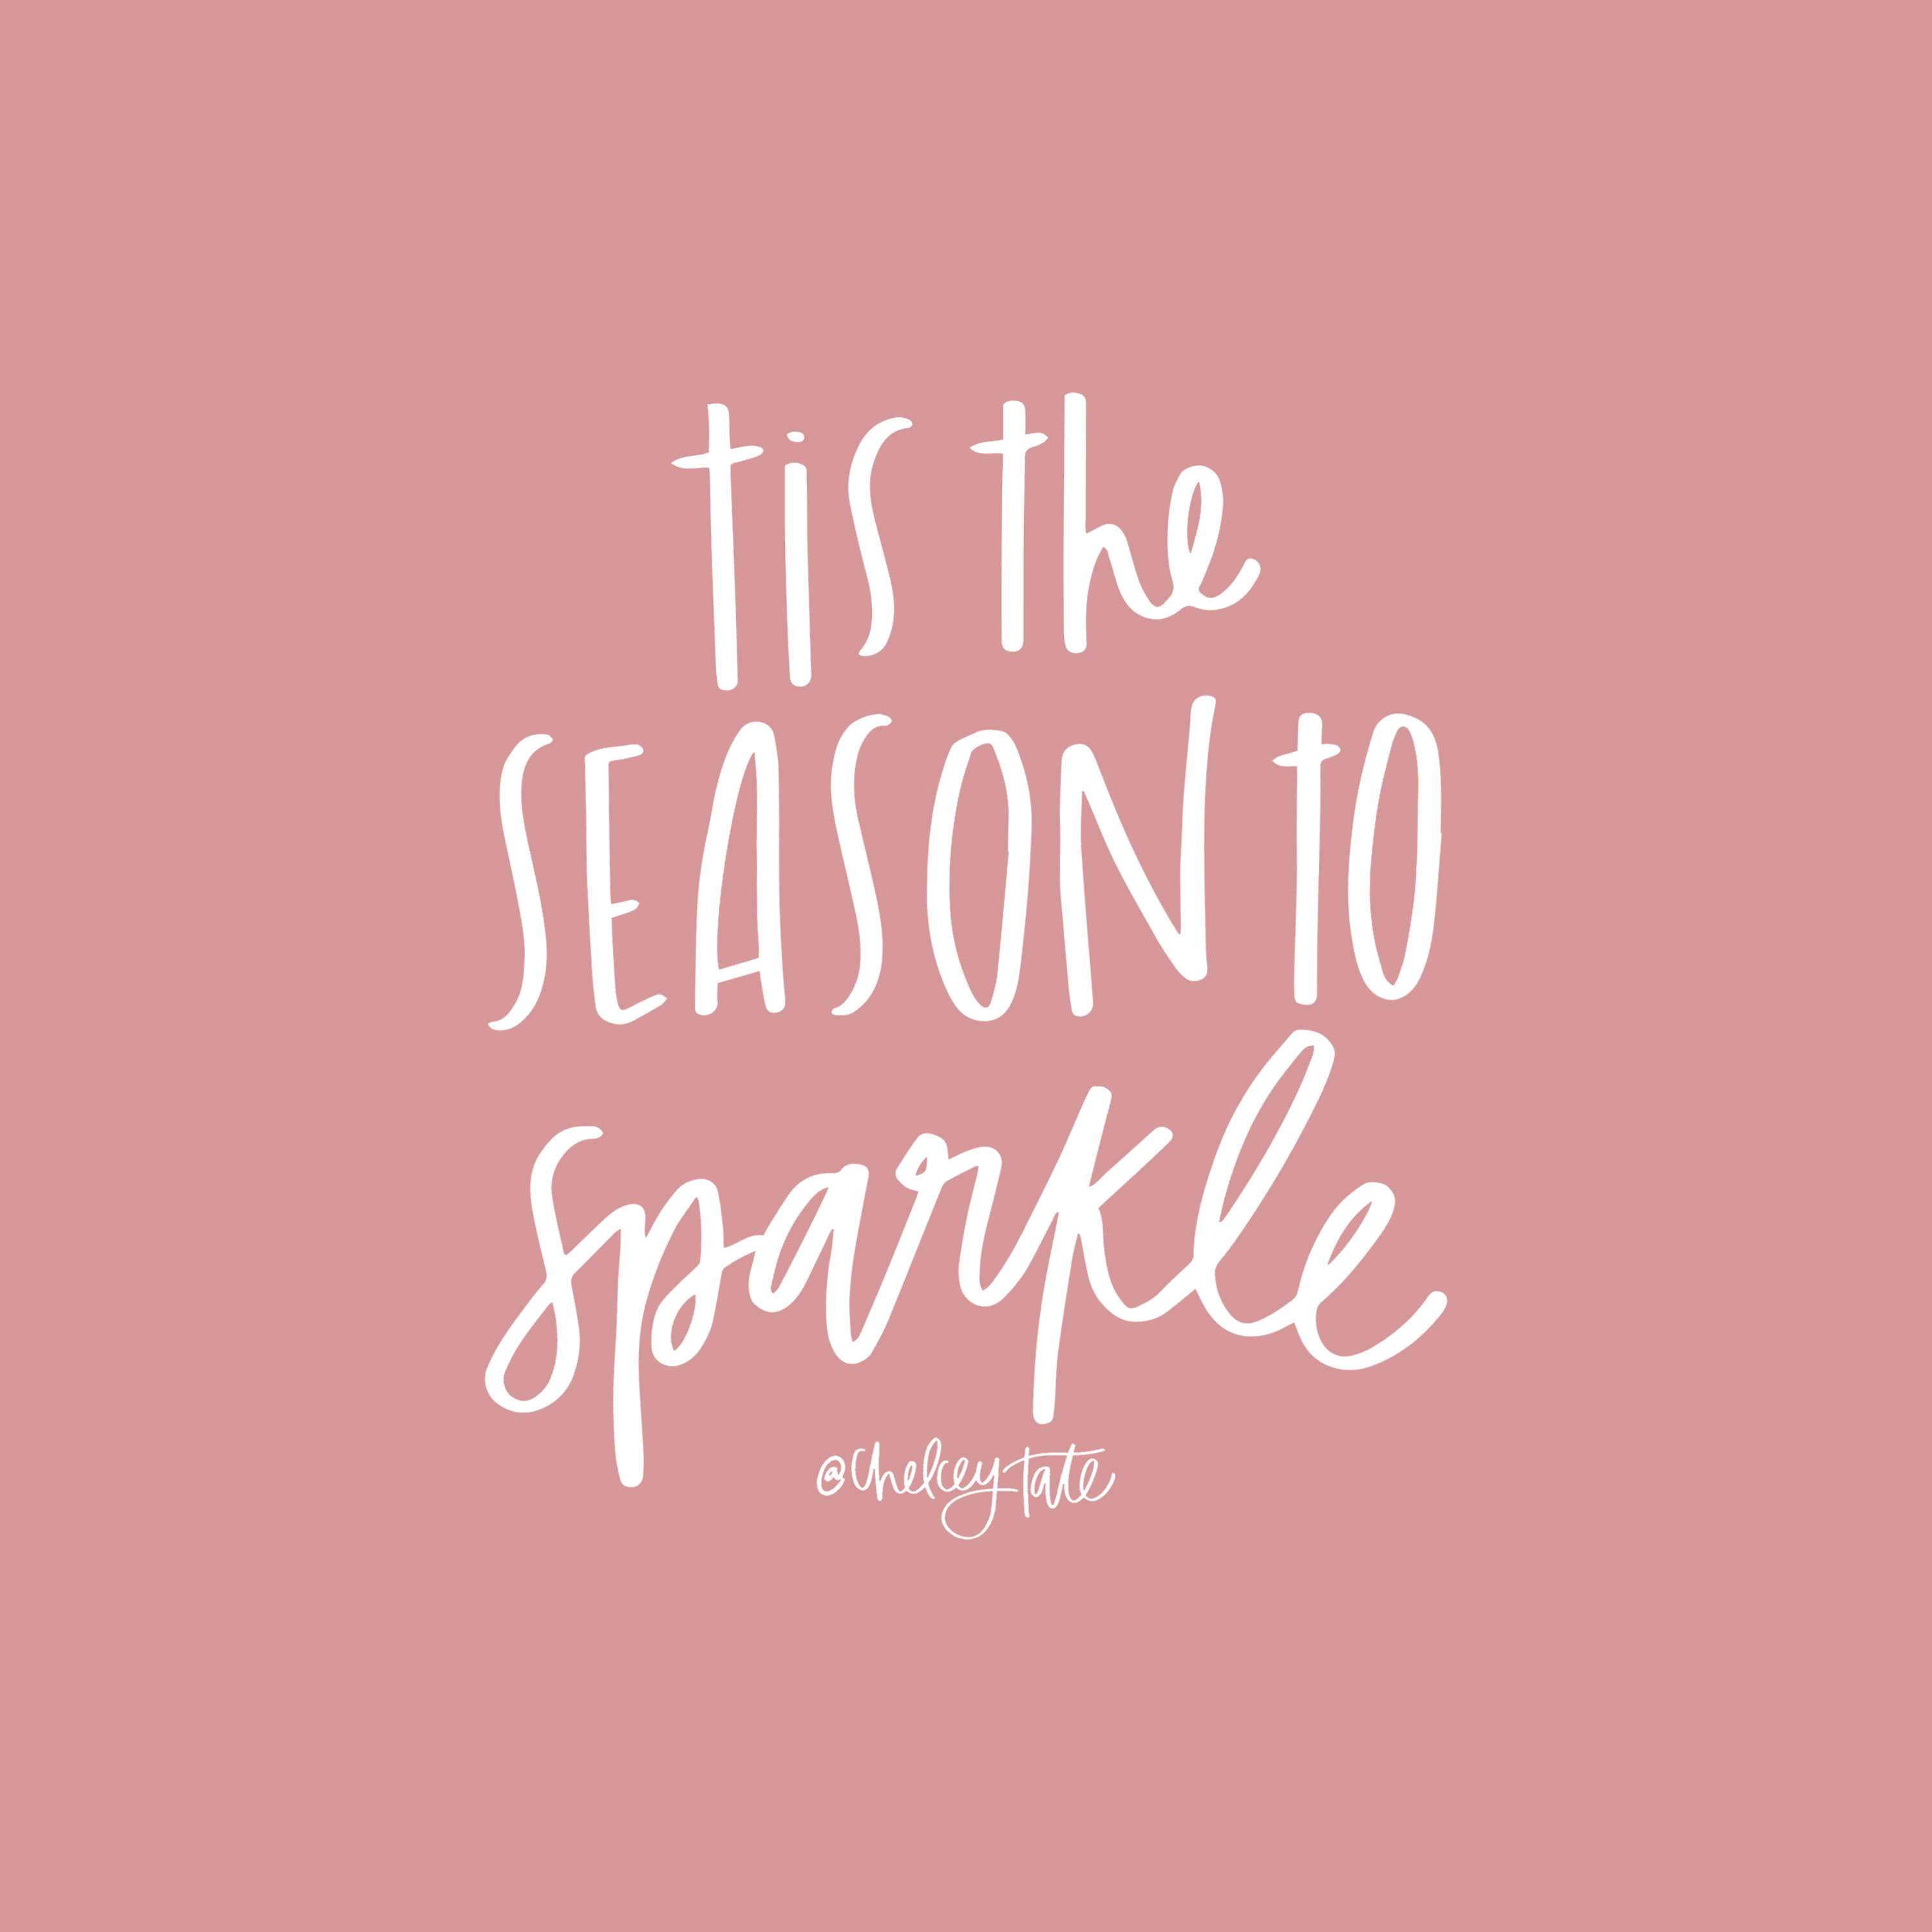 tis the season to sparkle christmas quote lettering via chelceytate